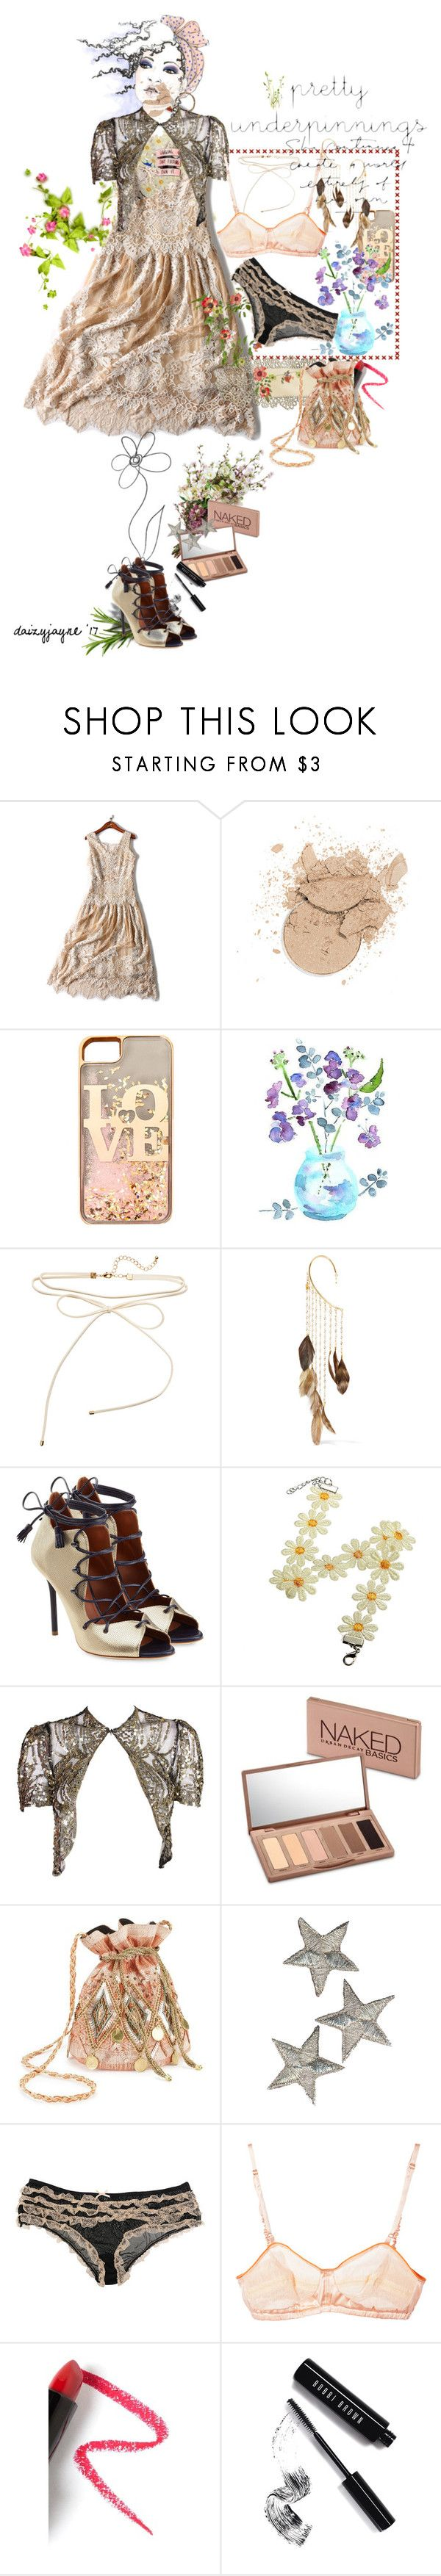 """pretty underpinnings"" by daizyjayne ❤ liked on Polyvore featuring claire's, Rosantica, Malone Souliers, Urban Decay, Miss Selfridge, Forever 21, Marni, Lapcos, Bobbi Brown Cosmetics and contestentry"